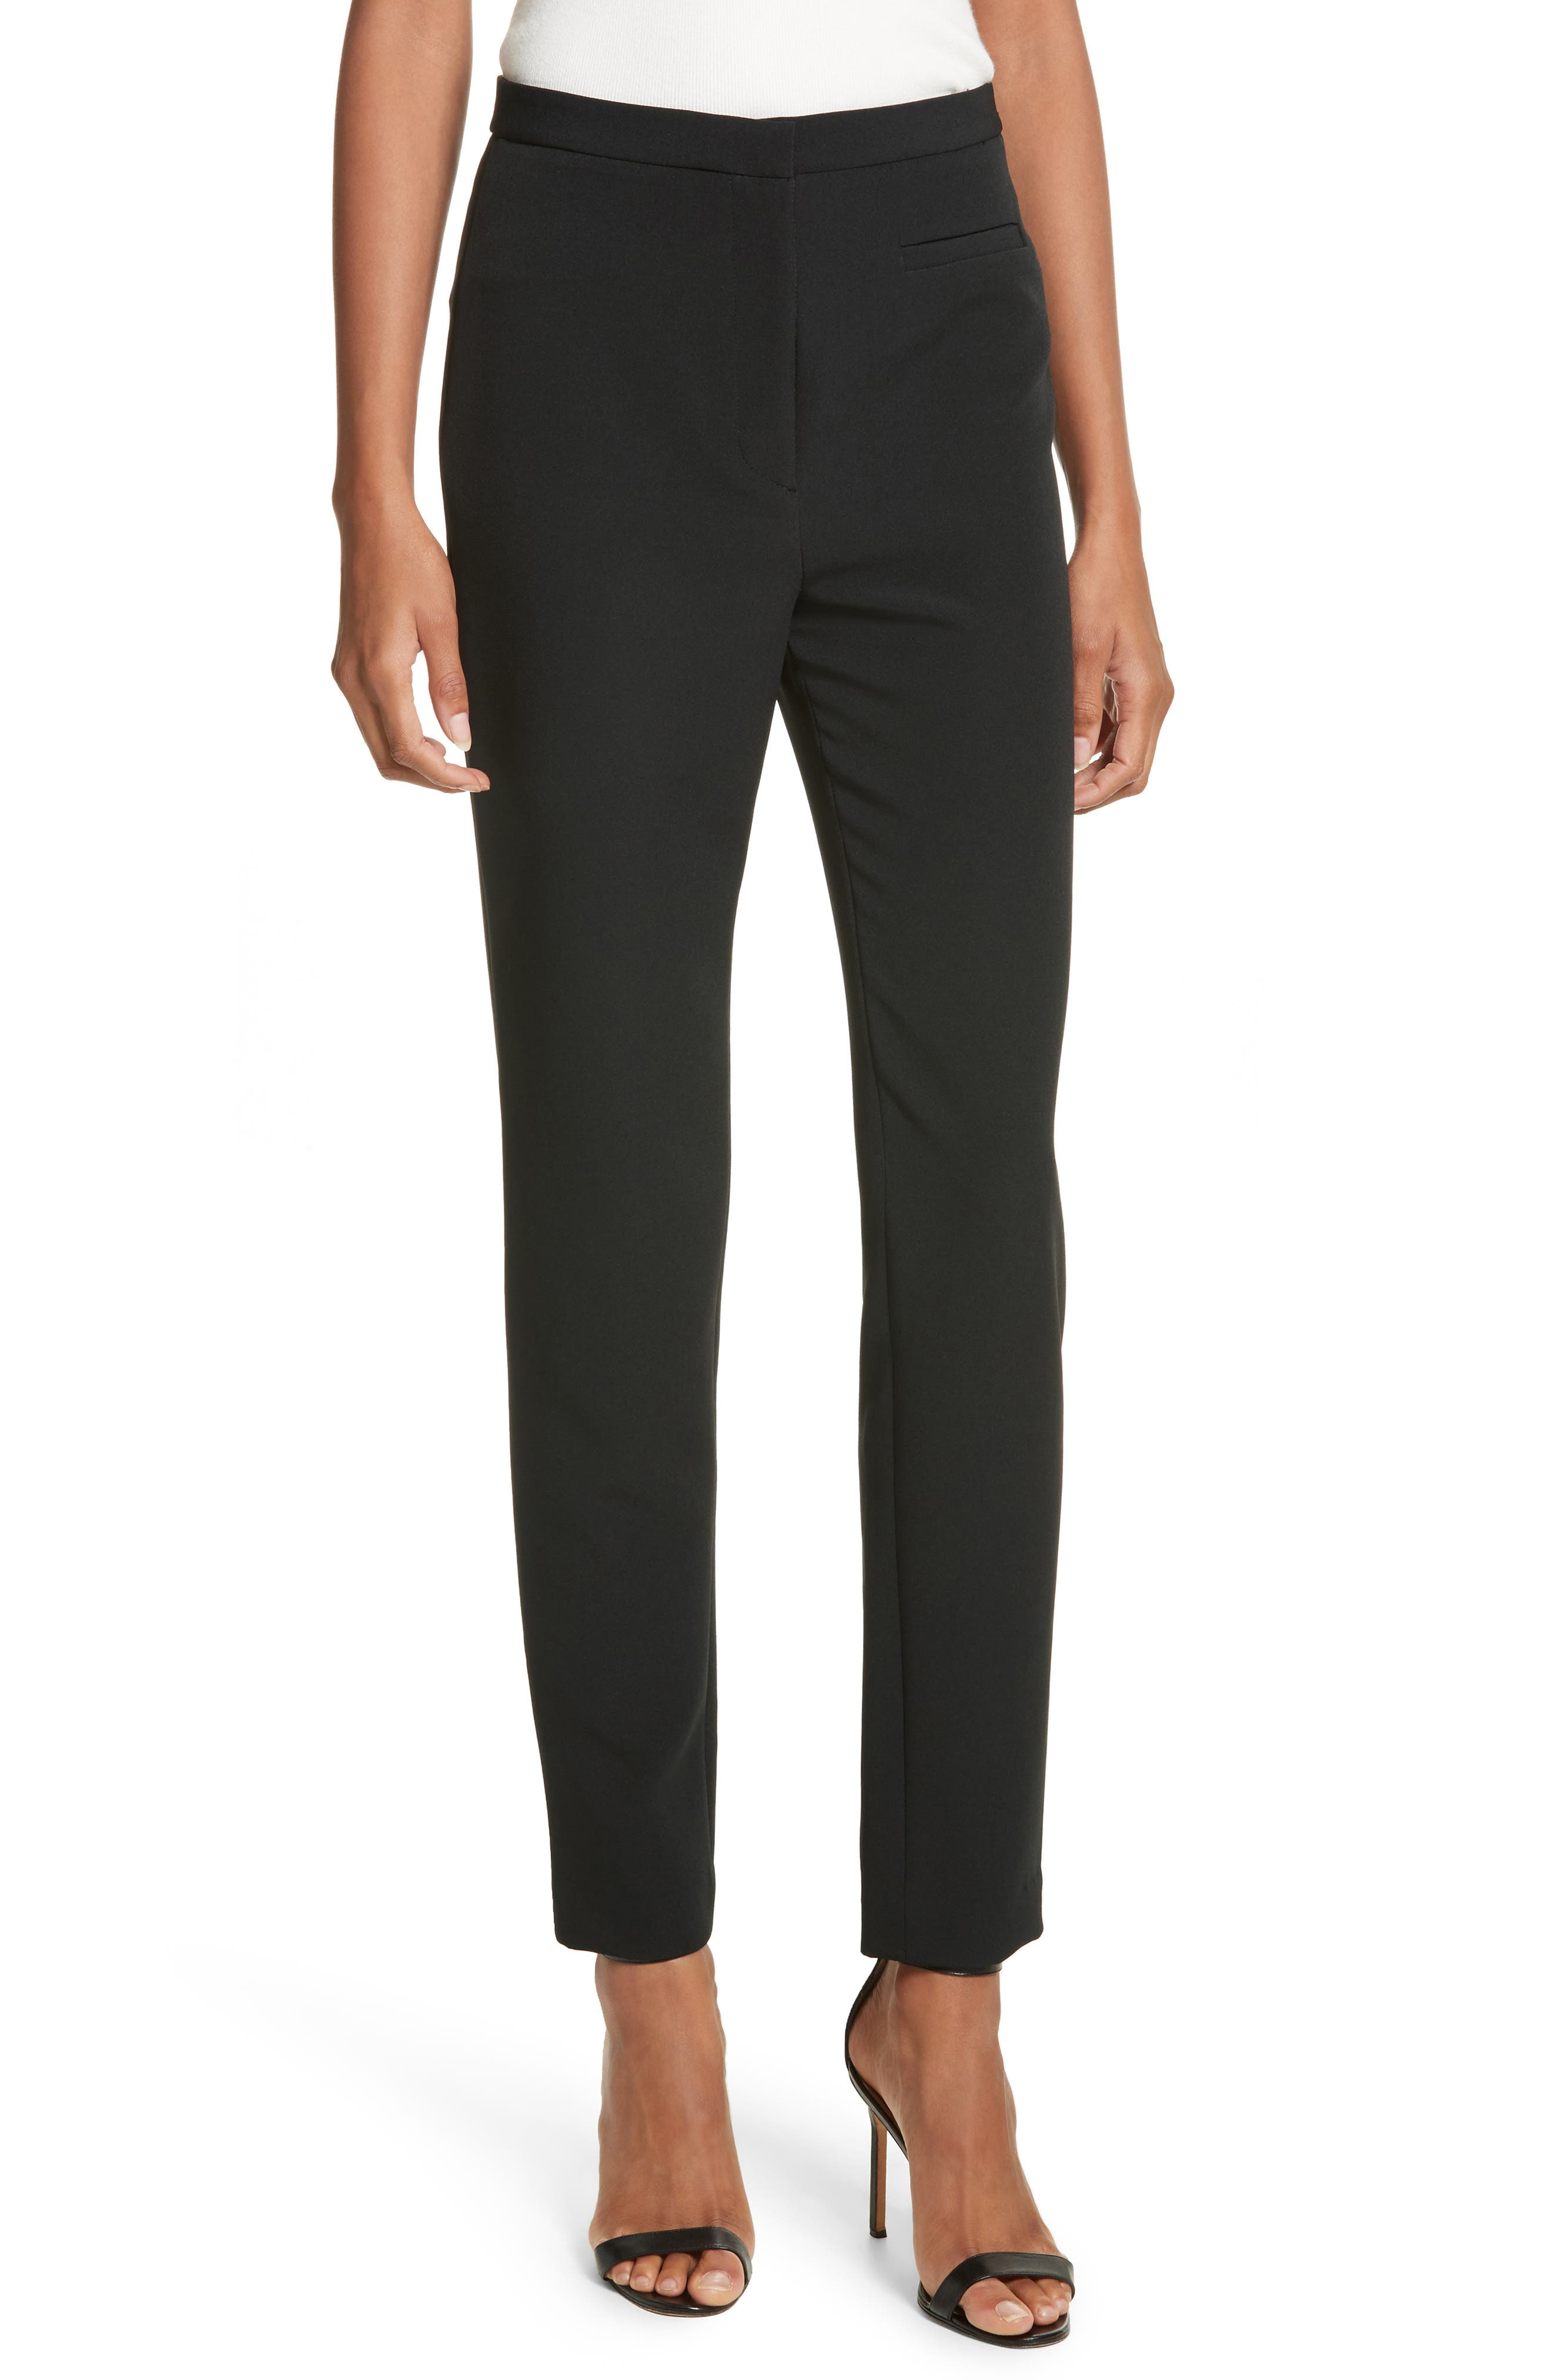 Milly Stretch Crepe High Waist Skinny Pants